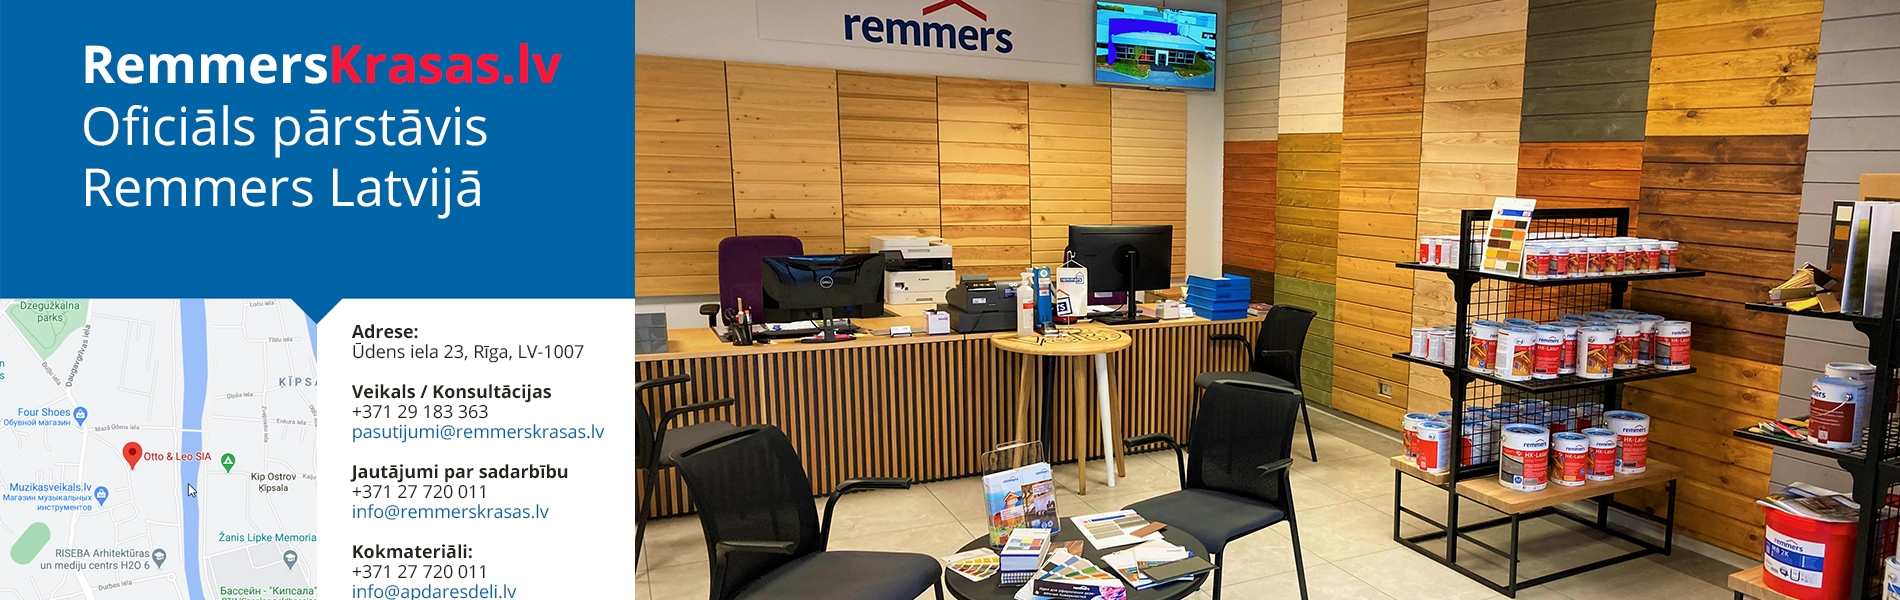 lv_banners_remmers